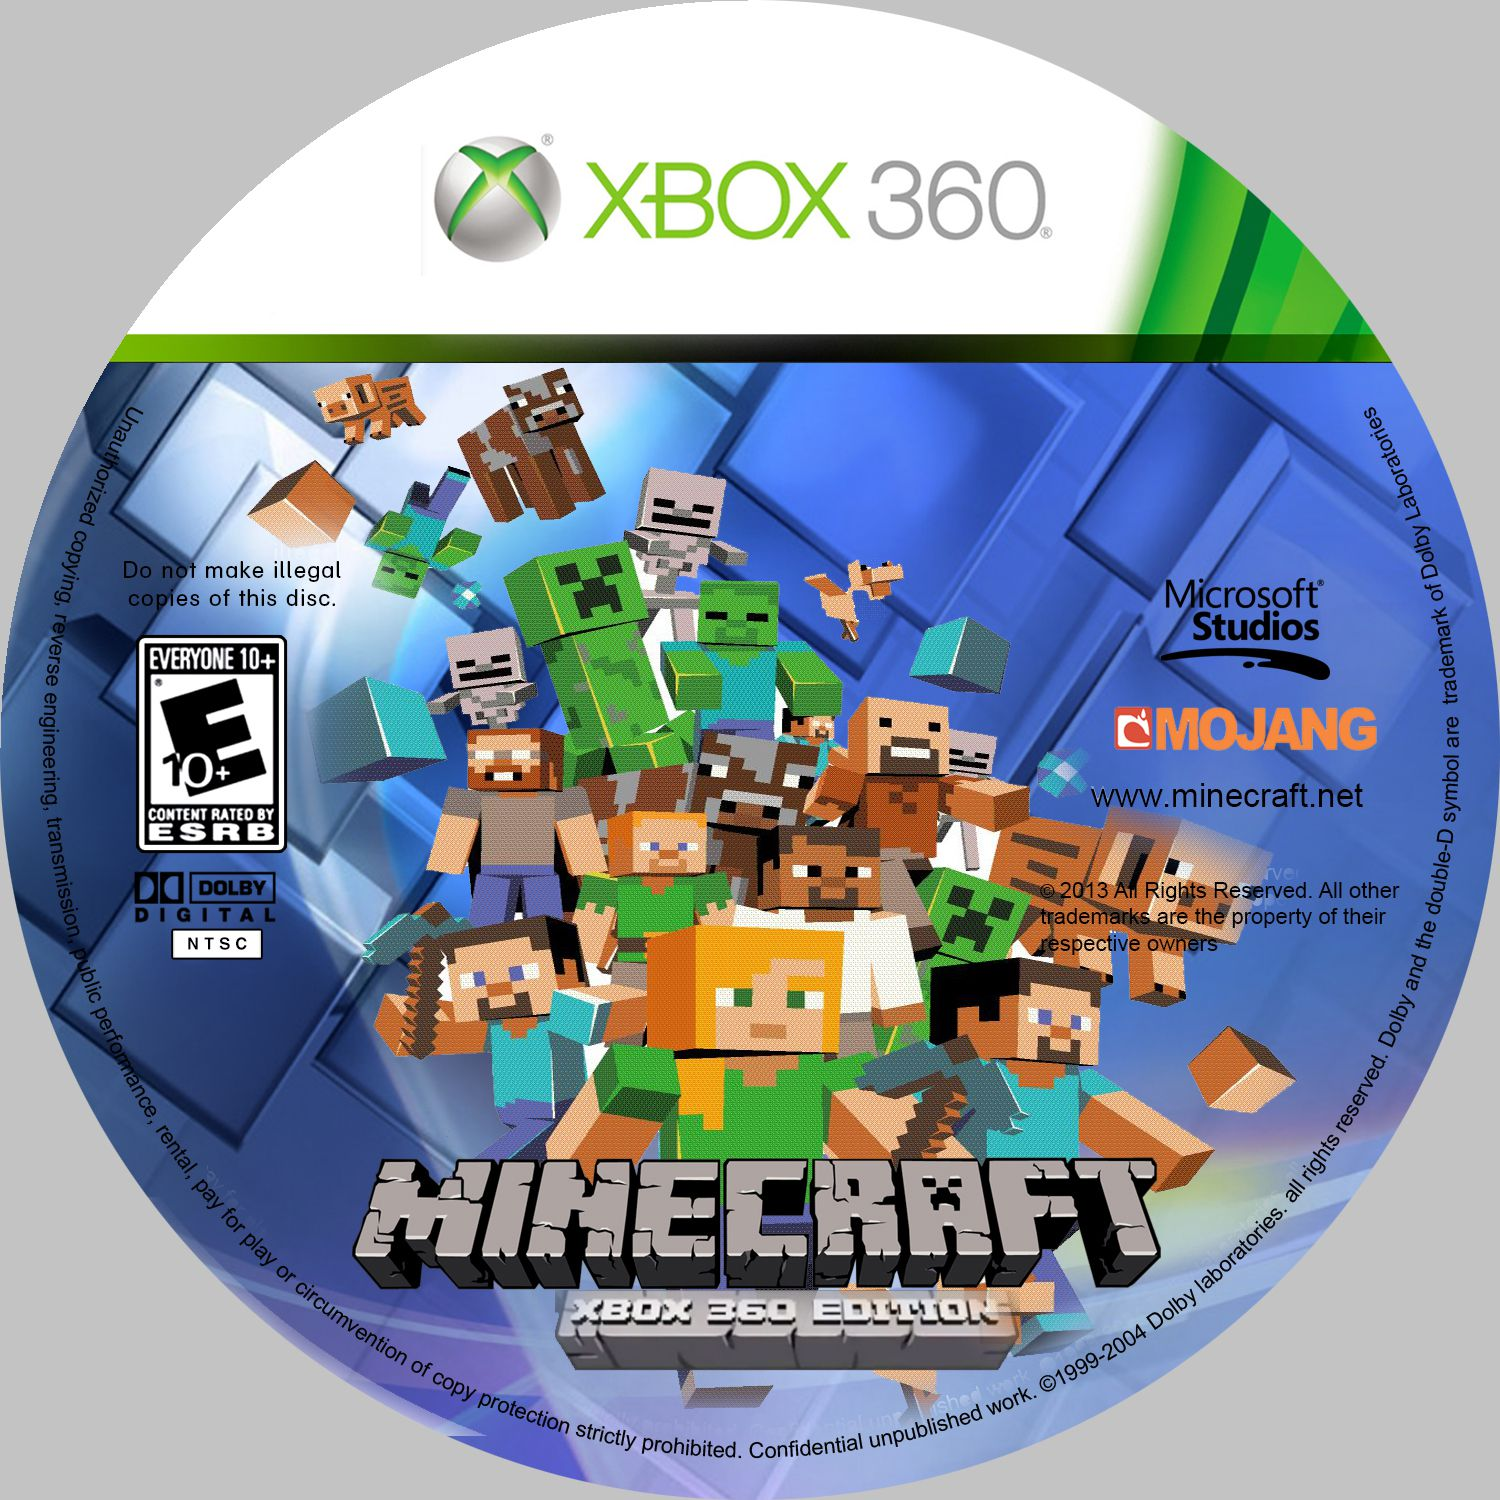 Comprar Jogos Ps 2 Xbox 360 Dvd Xbox360 Playstation 2 Ps2: Label Minecraft Xbox 360 Edition - Gamecover